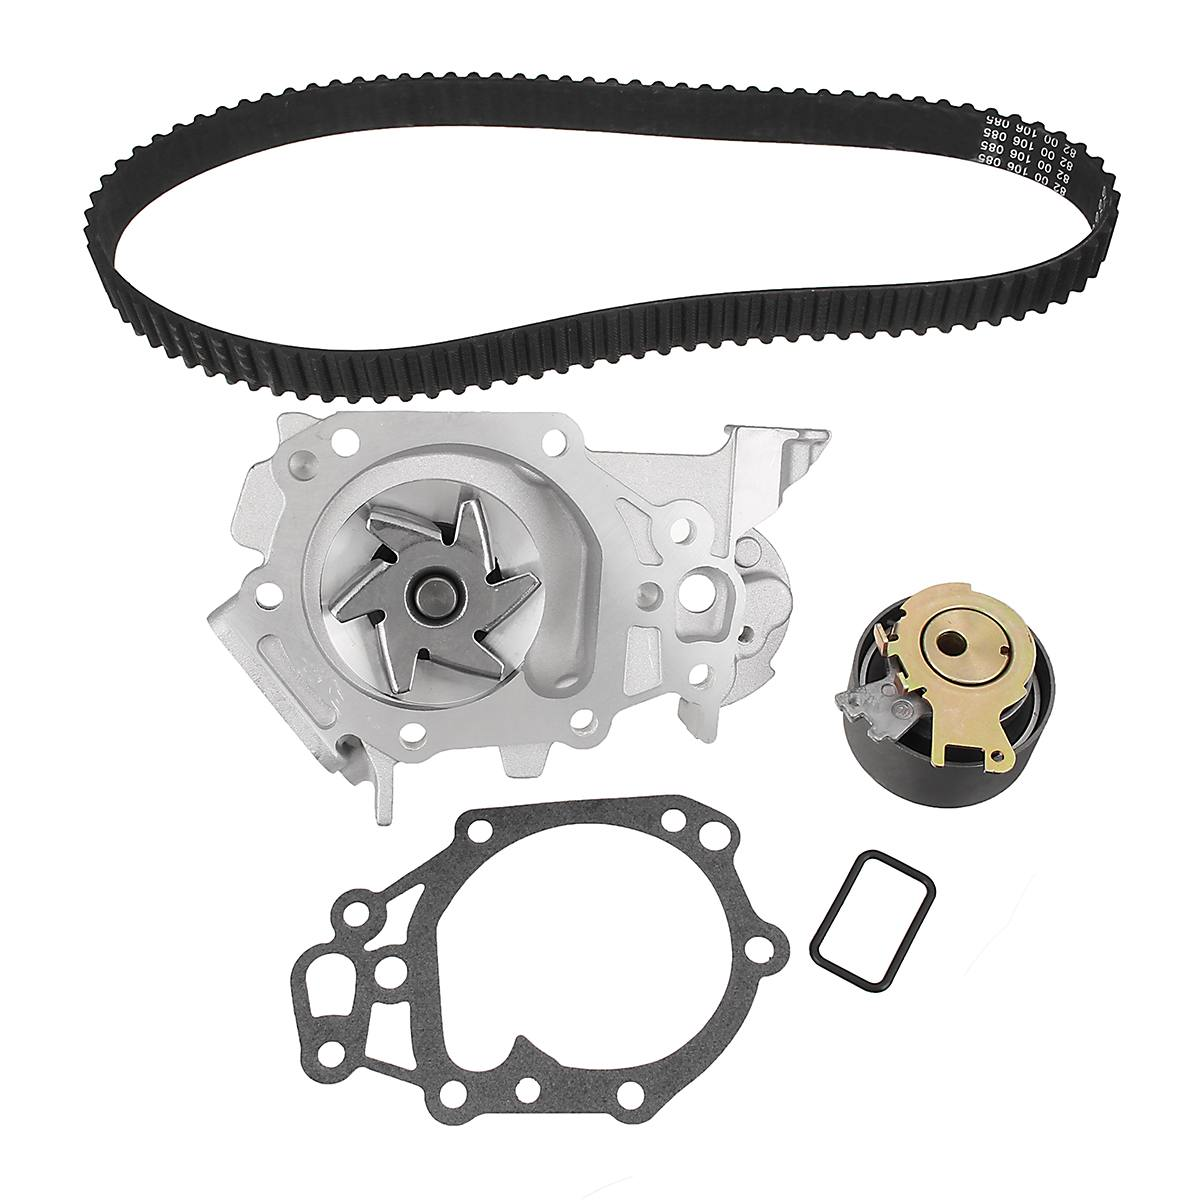 hight resolution of 1 2 16v gates timing belt water pump kp25577xs for renault clio clio grandtour kangoo modus grand modus thalia thalia i